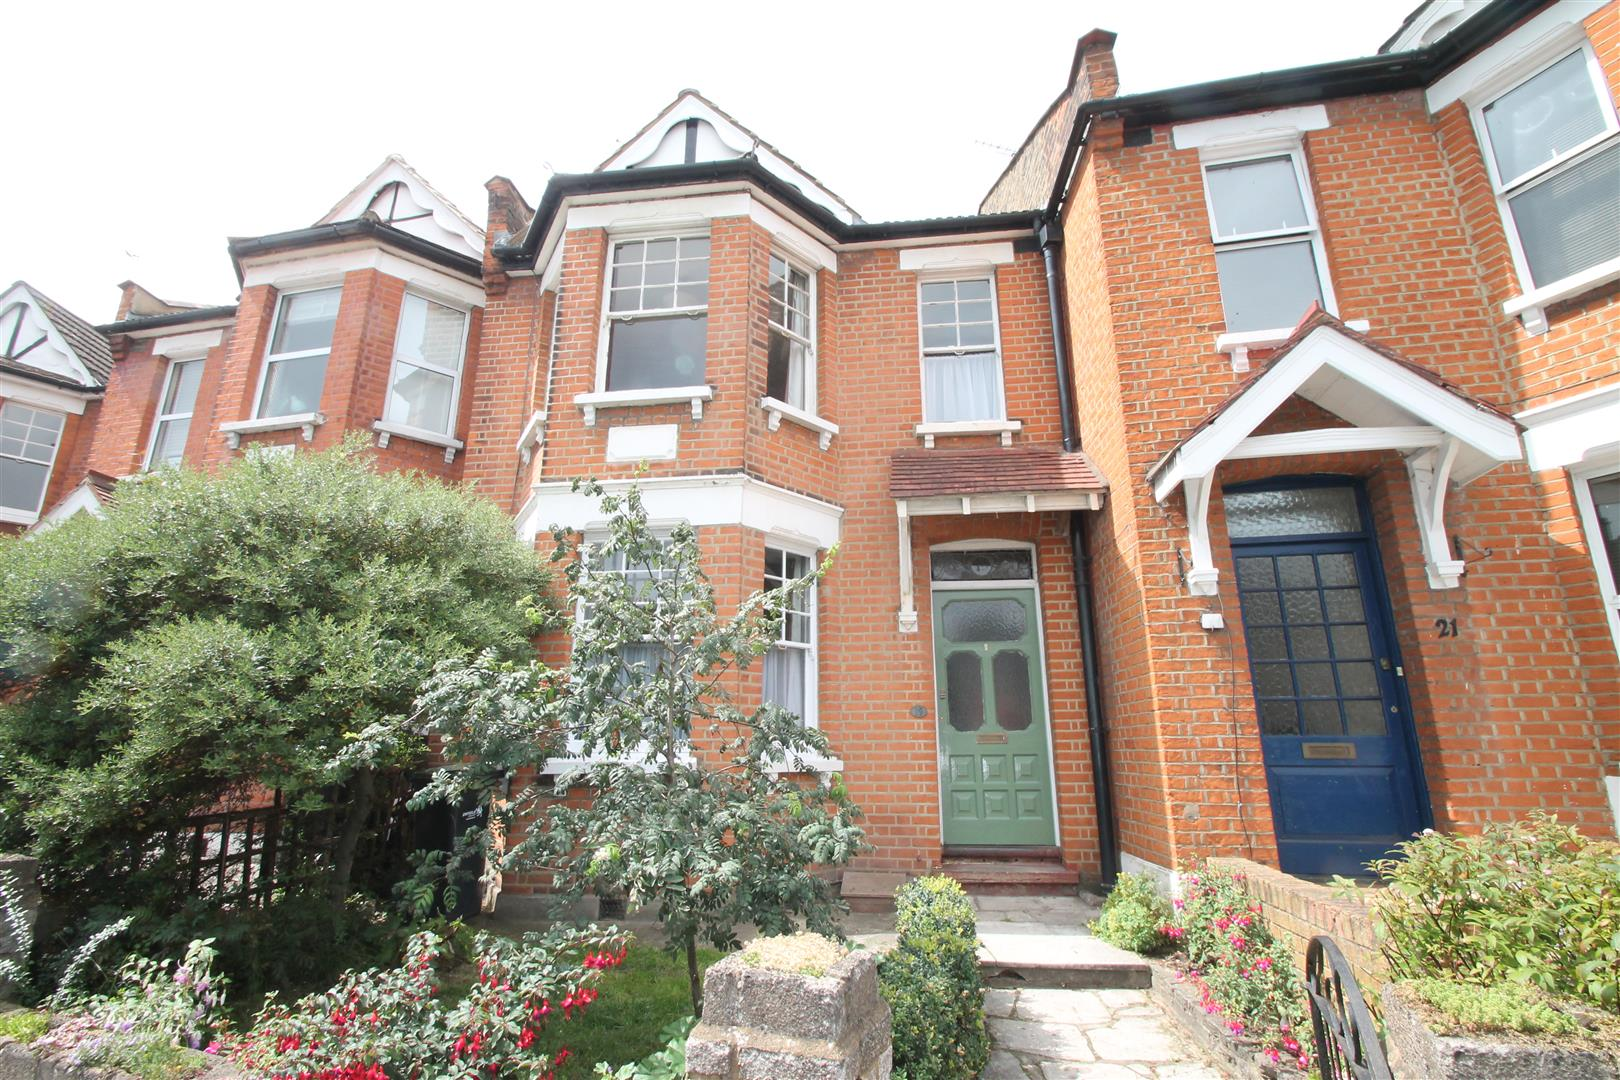 3 Bedrooms House for sale in Hoppers Road, London N21